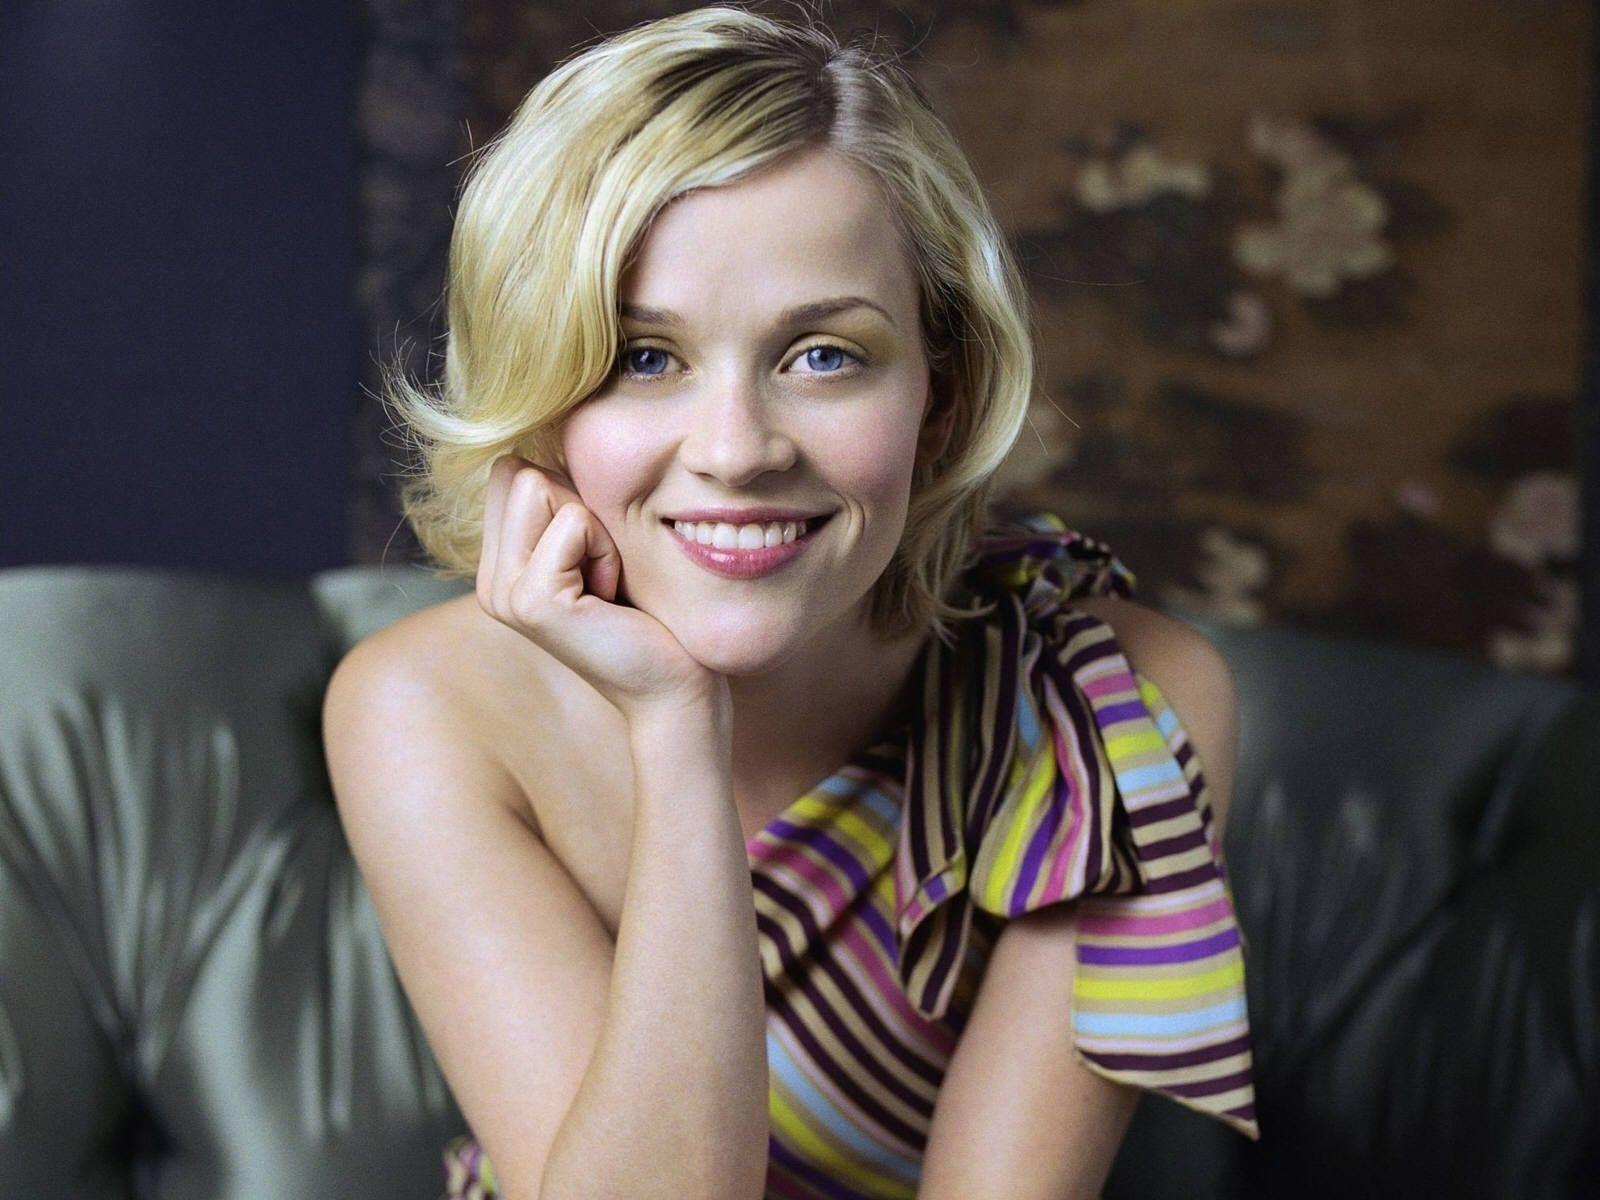 Reese Witherspoon wallpapers | Reese Witherspoon stock photos